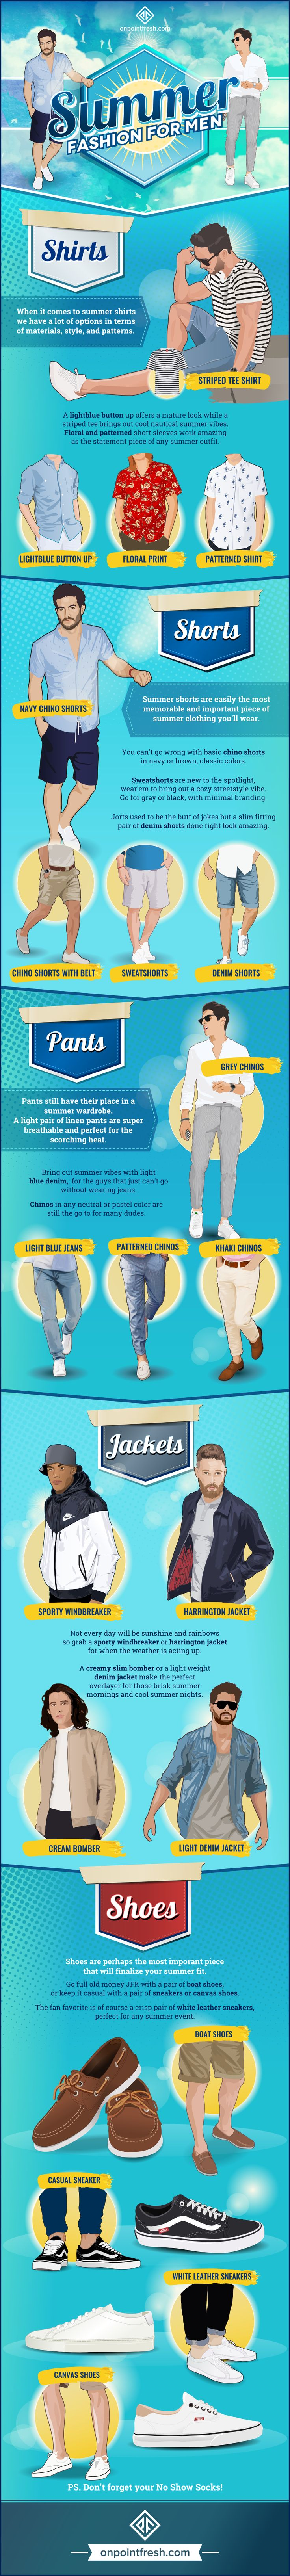 It's finally here! Our simple and easy visual guide made to help you pick out your summer outfits! We highly recommend you check out...